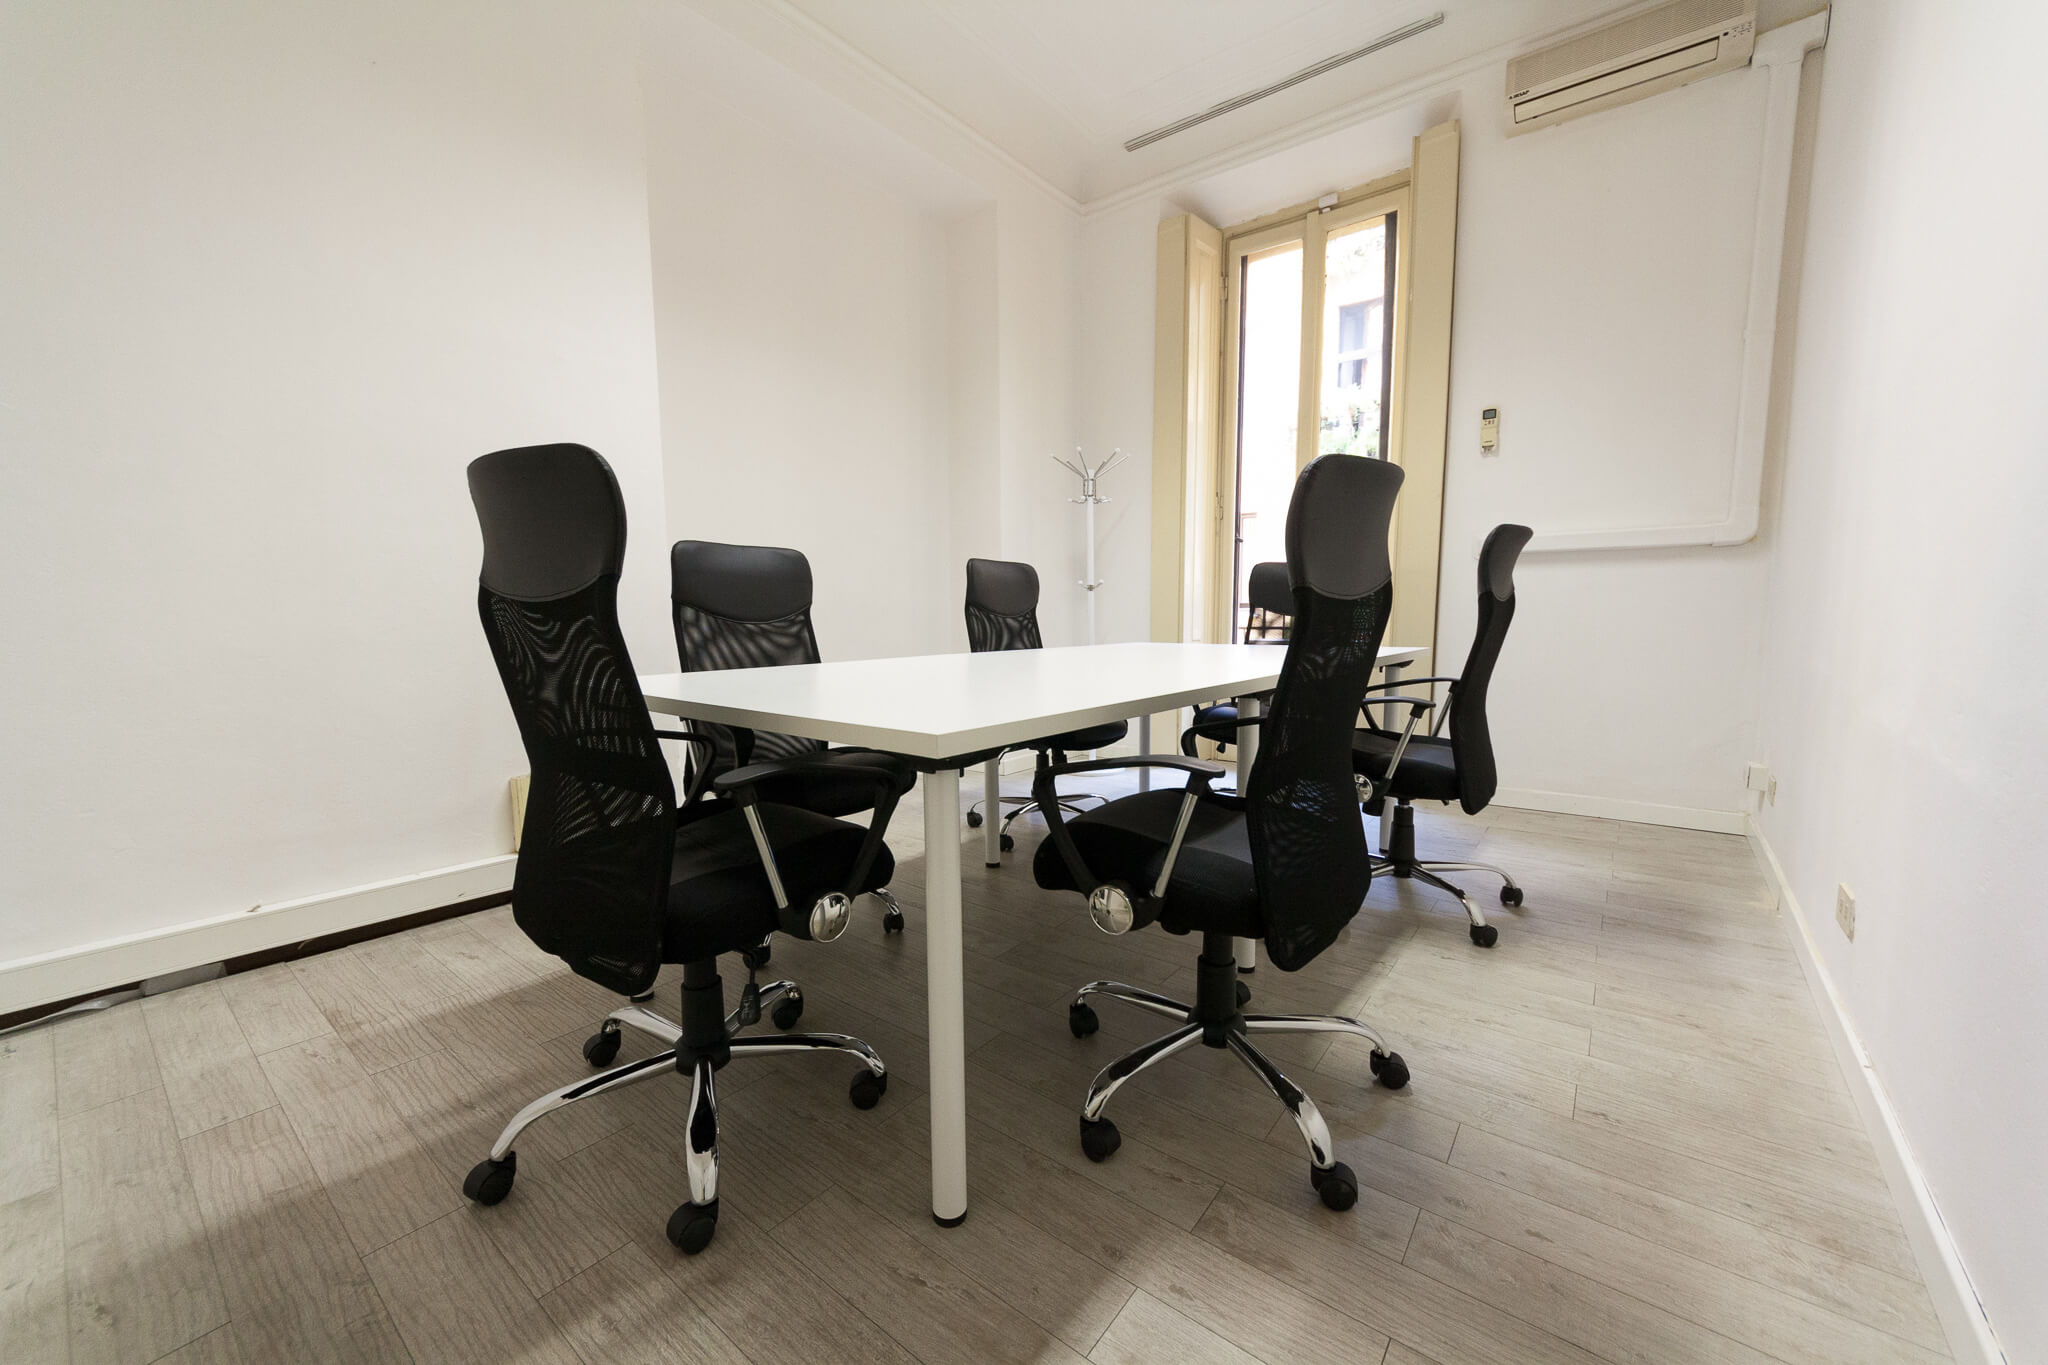 milan central small meeting room offisquare rh offisquare com small meeting room table small meeting room design